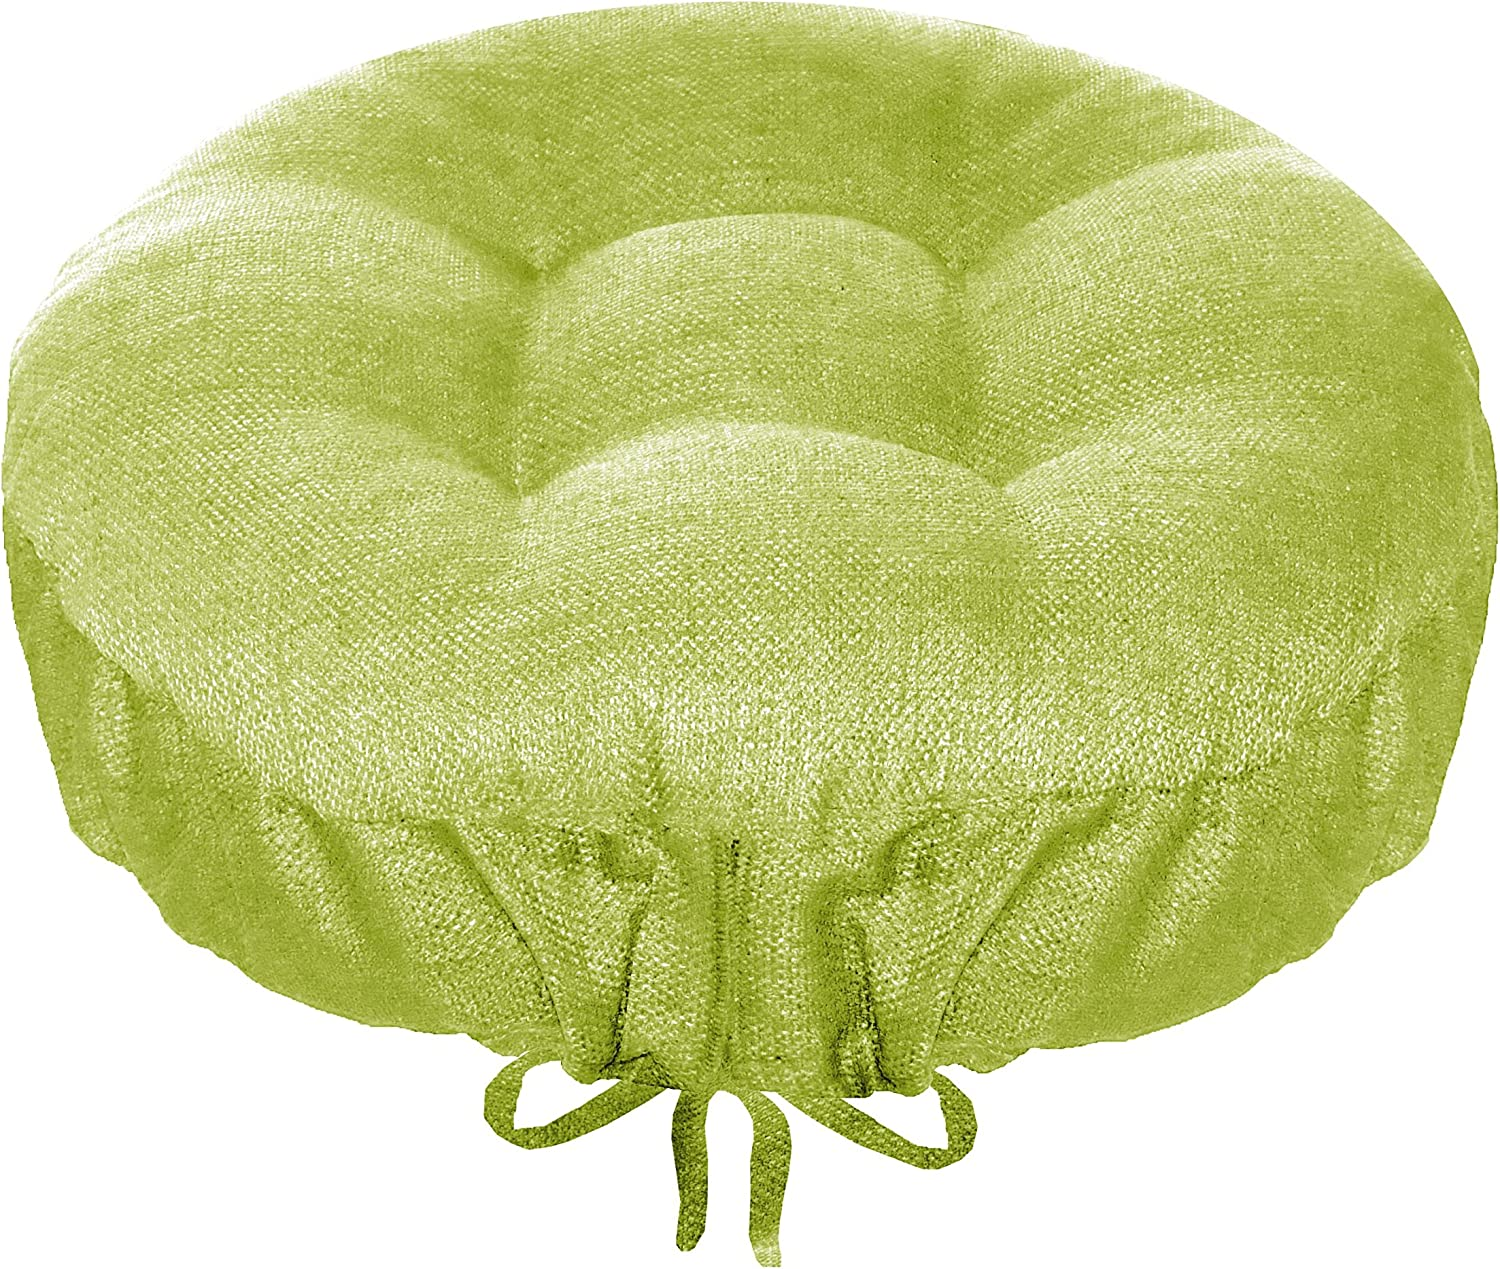 Bar Stool Cover - Rave Celery Green - Size Standard Indoor   Outdoor Barstool Cushion - Latex Foam Bar Stool Cushion with Adjustable Drawstring - Round